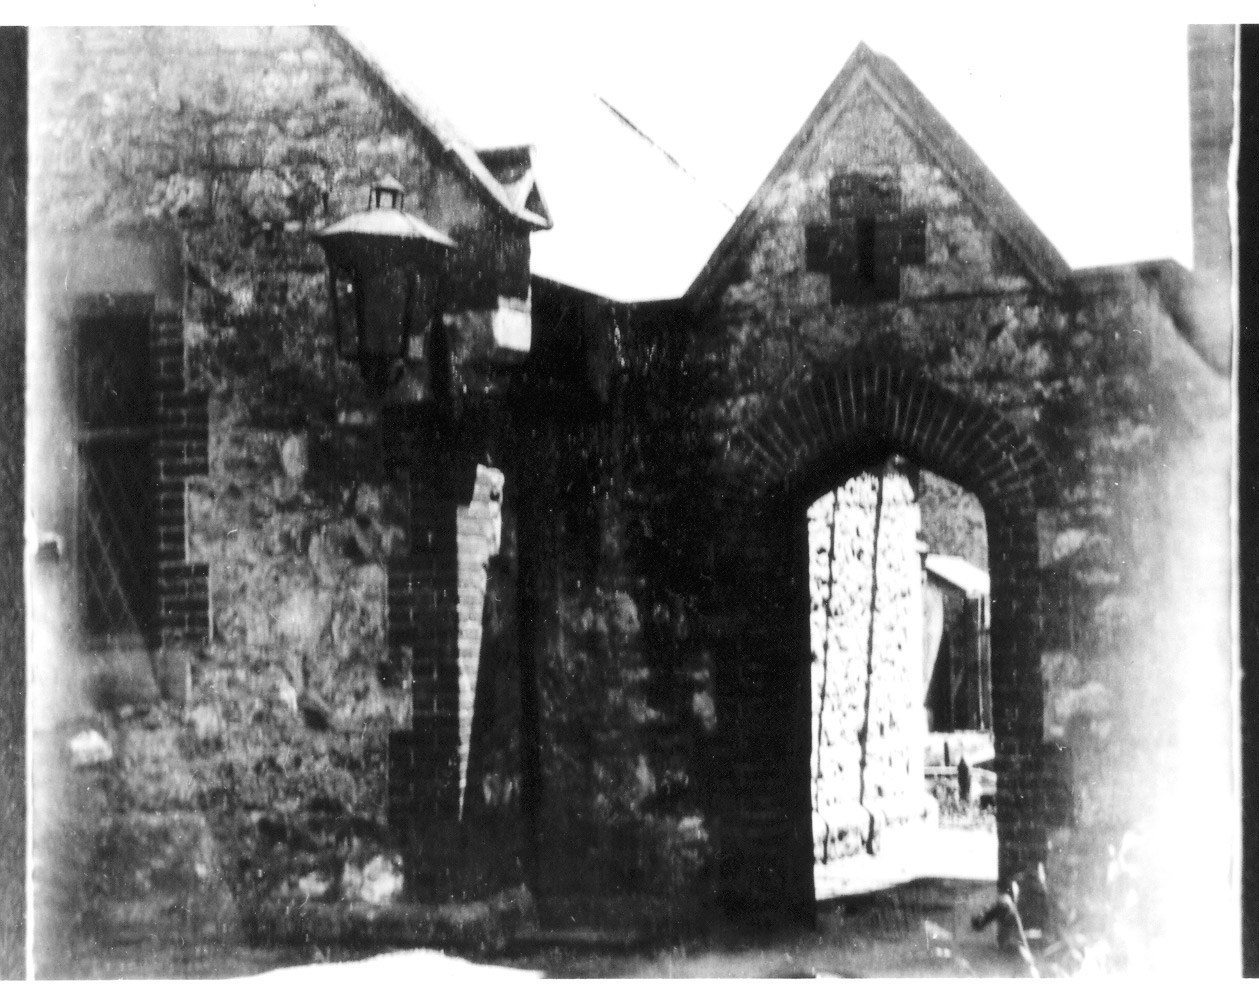 The archway built in 1854 which led into the Women¹s Quarters in the Destitute Asylum